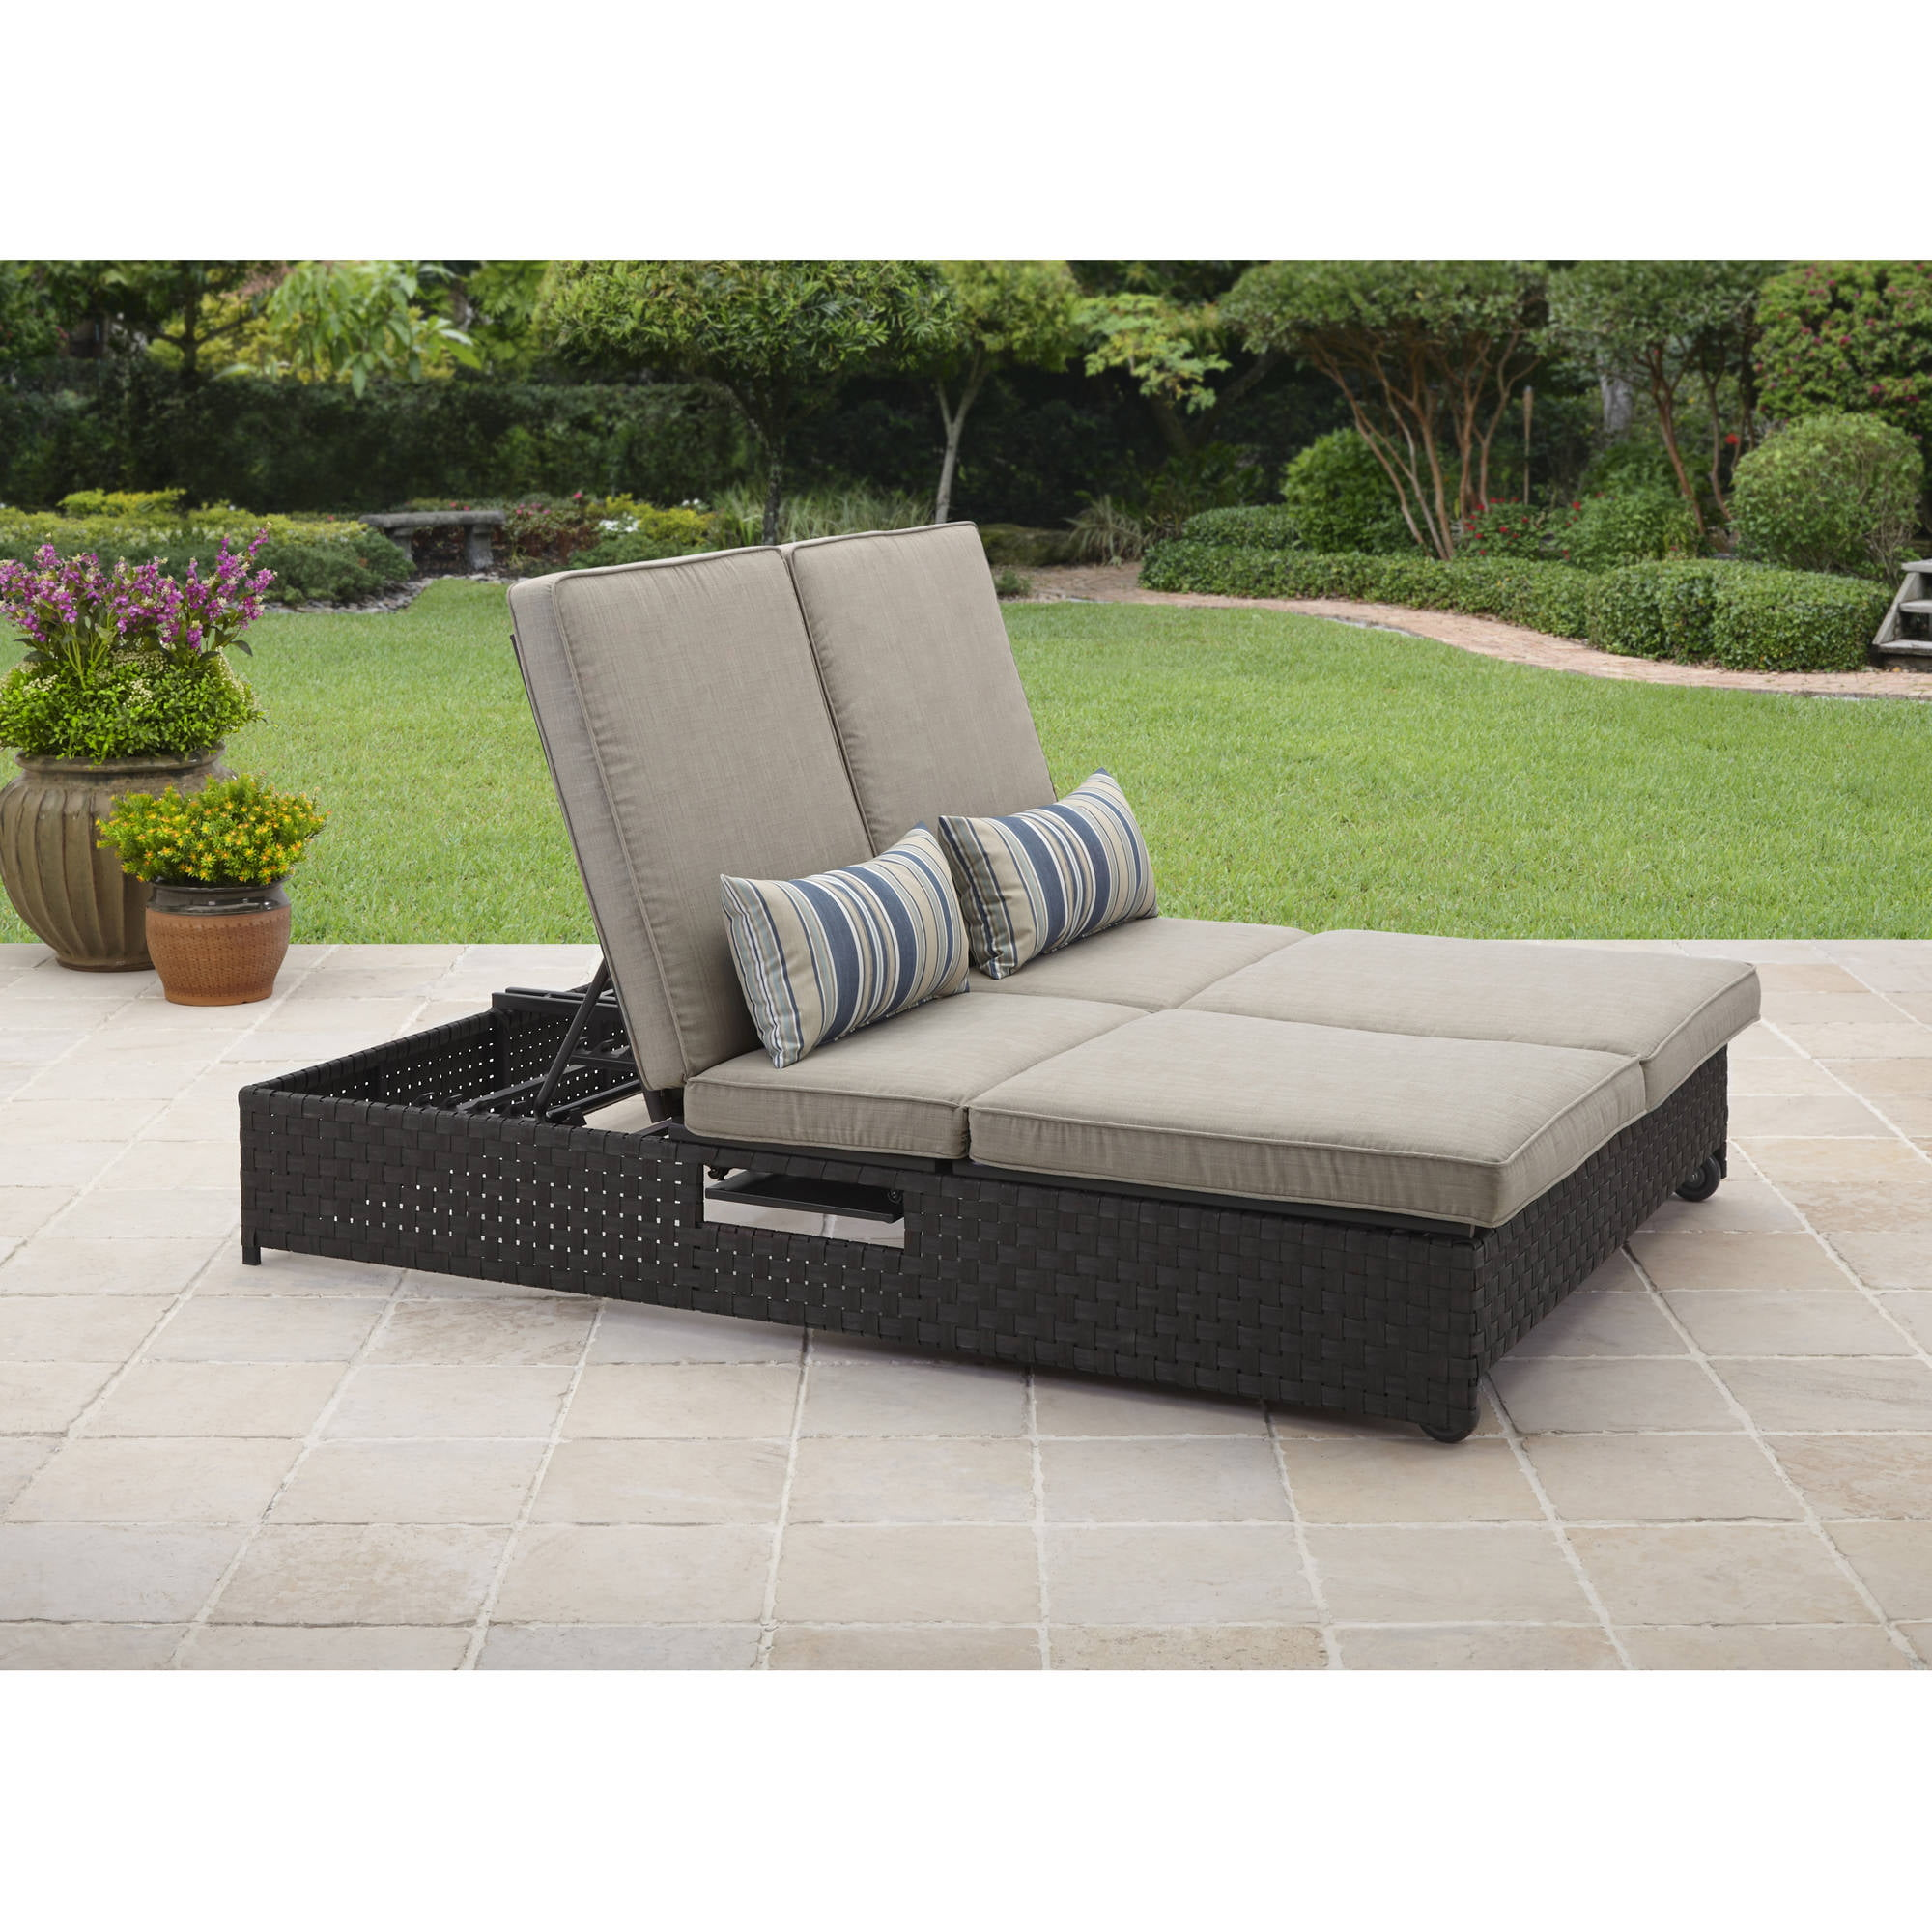 lounge in oceanic chaise cushion outdoor double furniture cushions sunbrella teak fabric sale